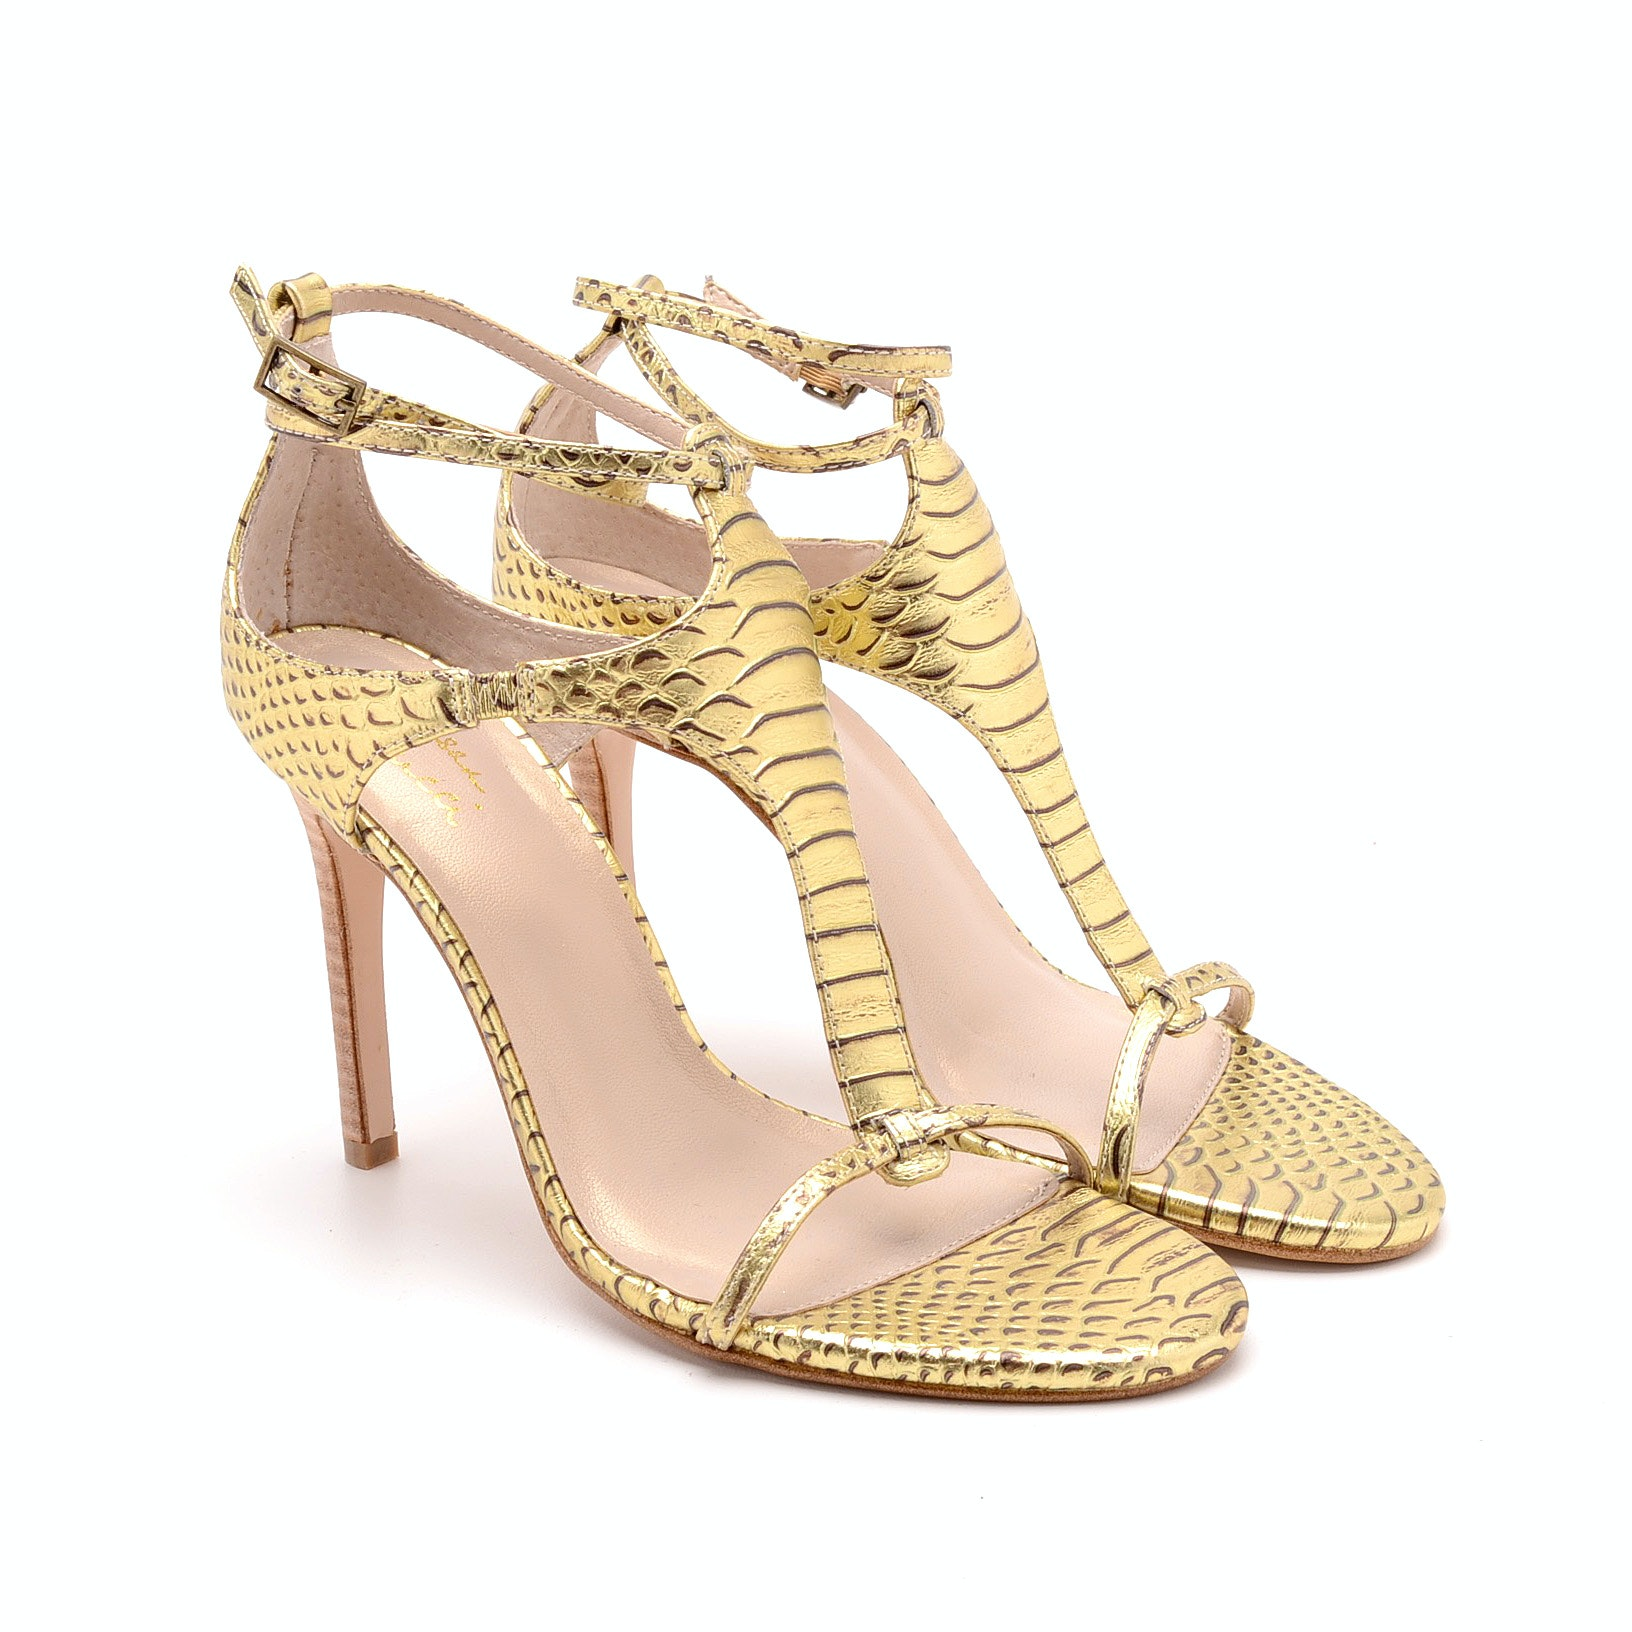 Susan Lucci Brand Gold Metallic Embossed Leather Dress Sandals